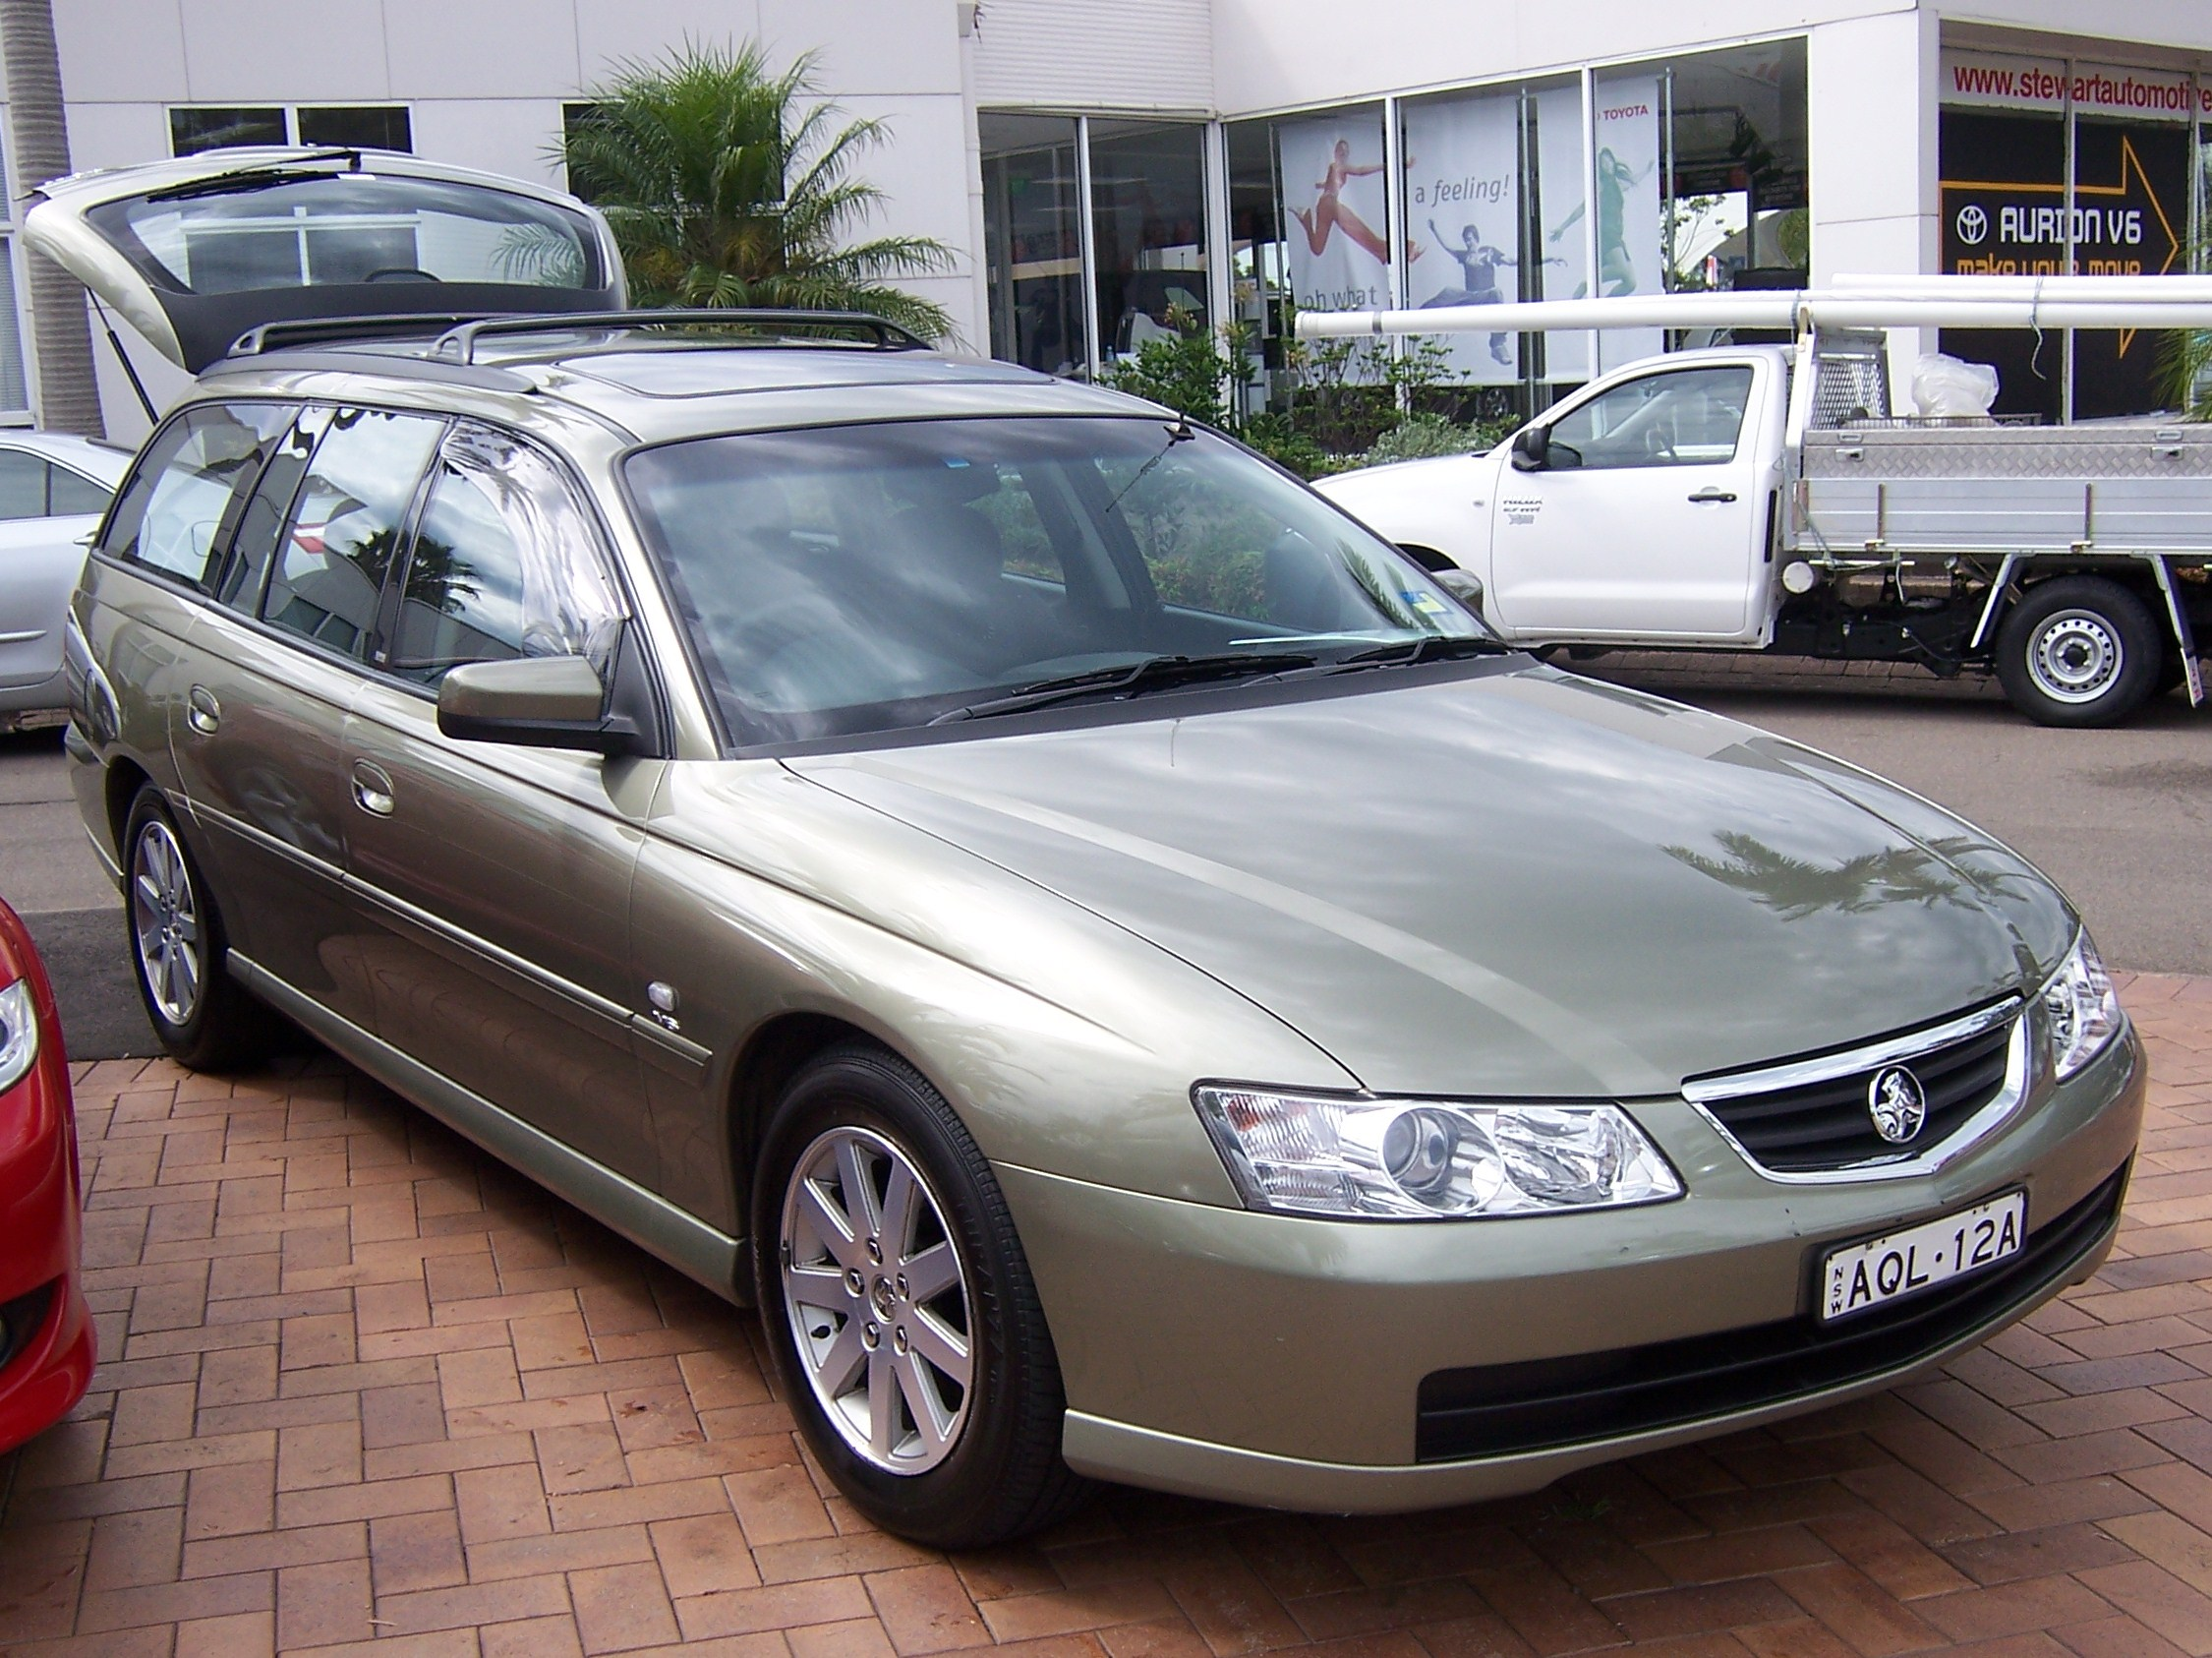 2004 Holden Berlina #9